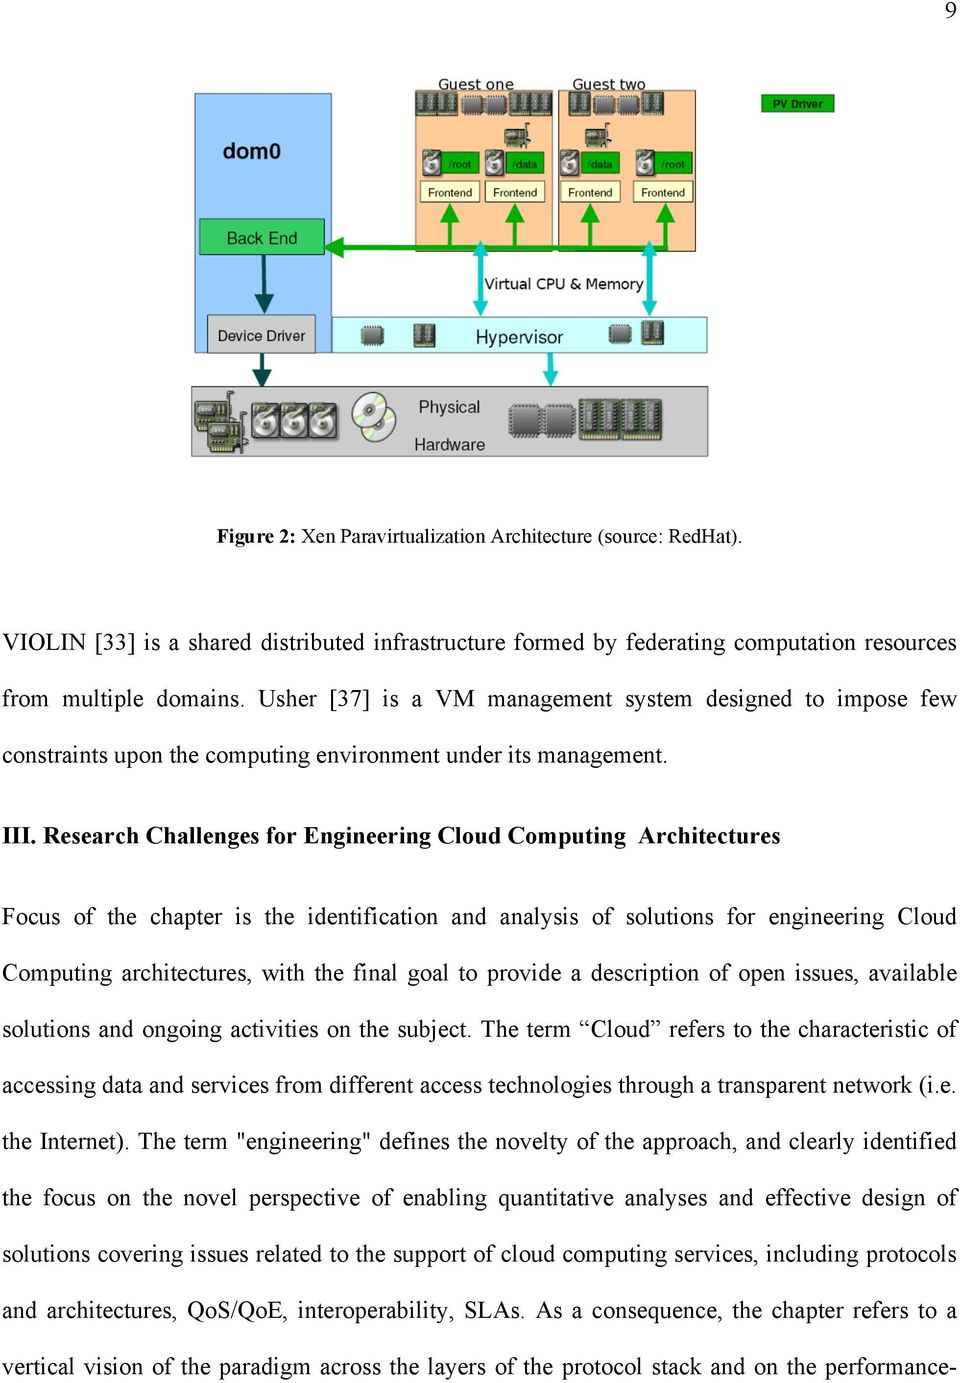 Research Challenges for Engineering Cloud Computing Architectures Focus of the chapter is the identification and analysis of solutions for engineering Cloud Computing architectures, with the final